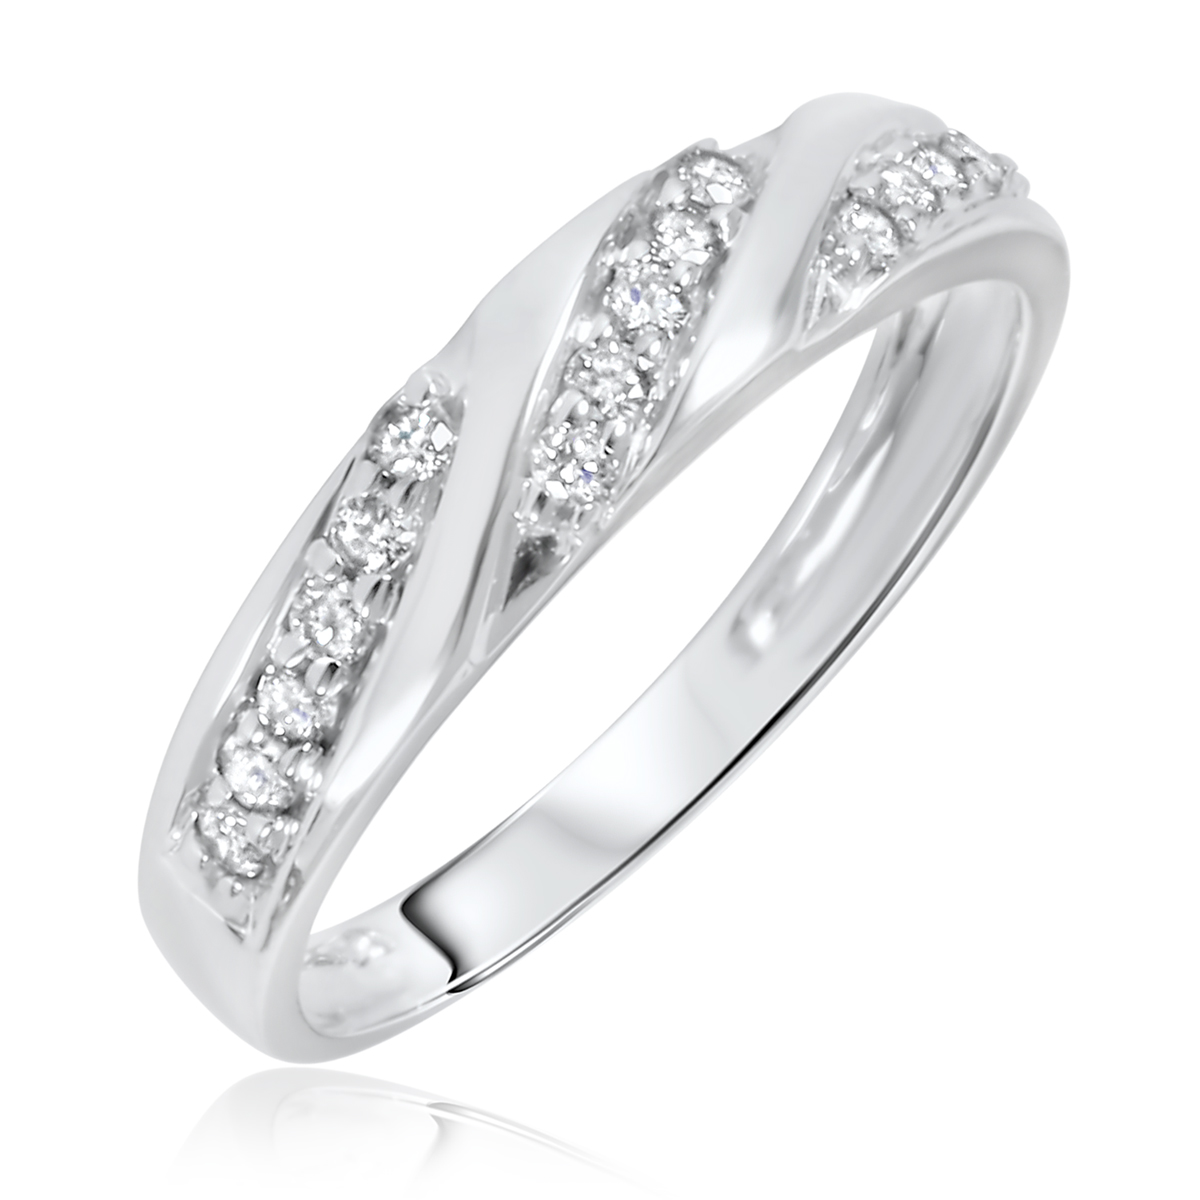 Diamond Mens Rings Price